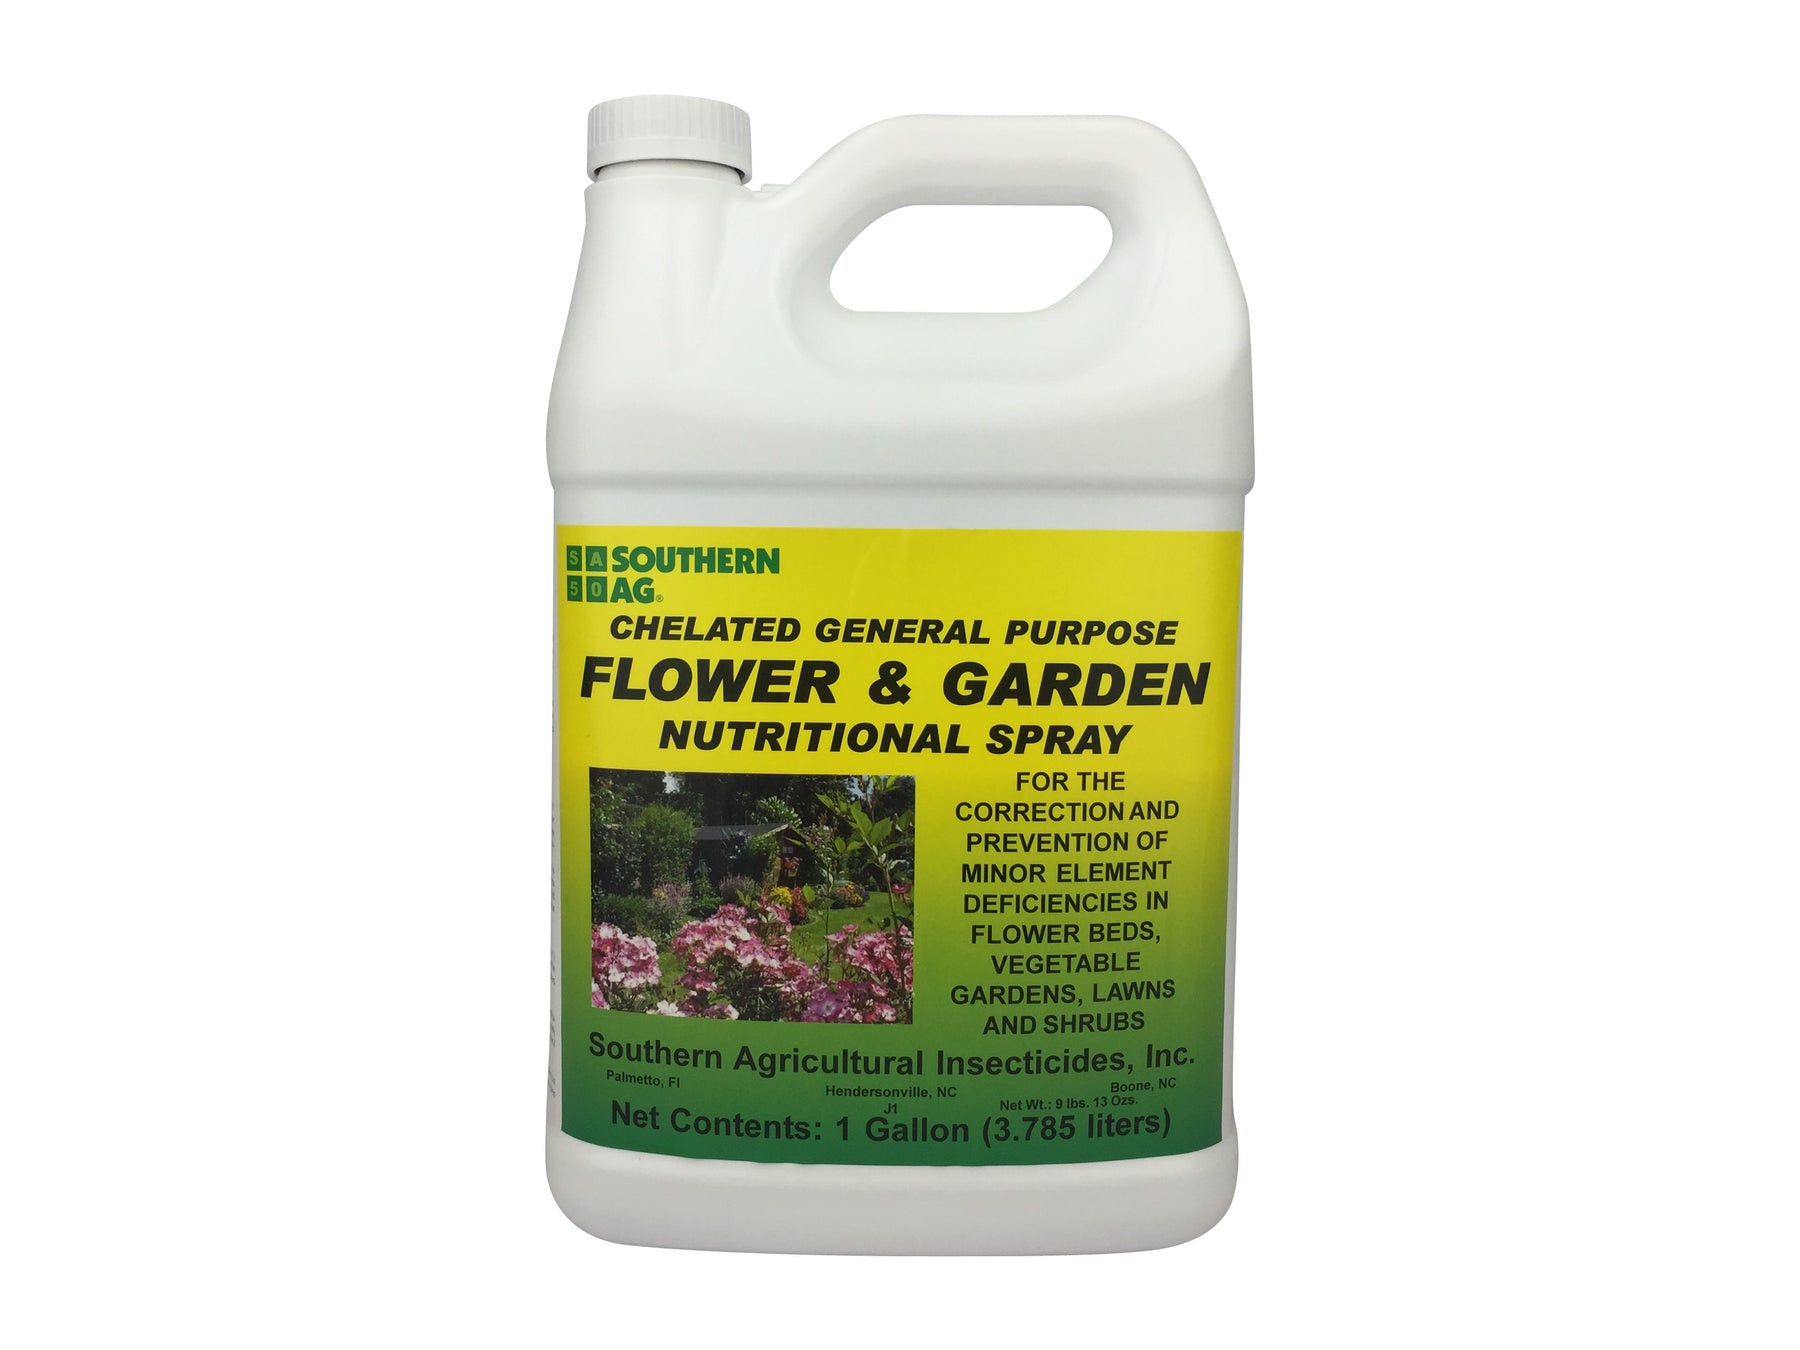 Southern Ag Chelated General Purpose Flower & Garden Nutritional Spray